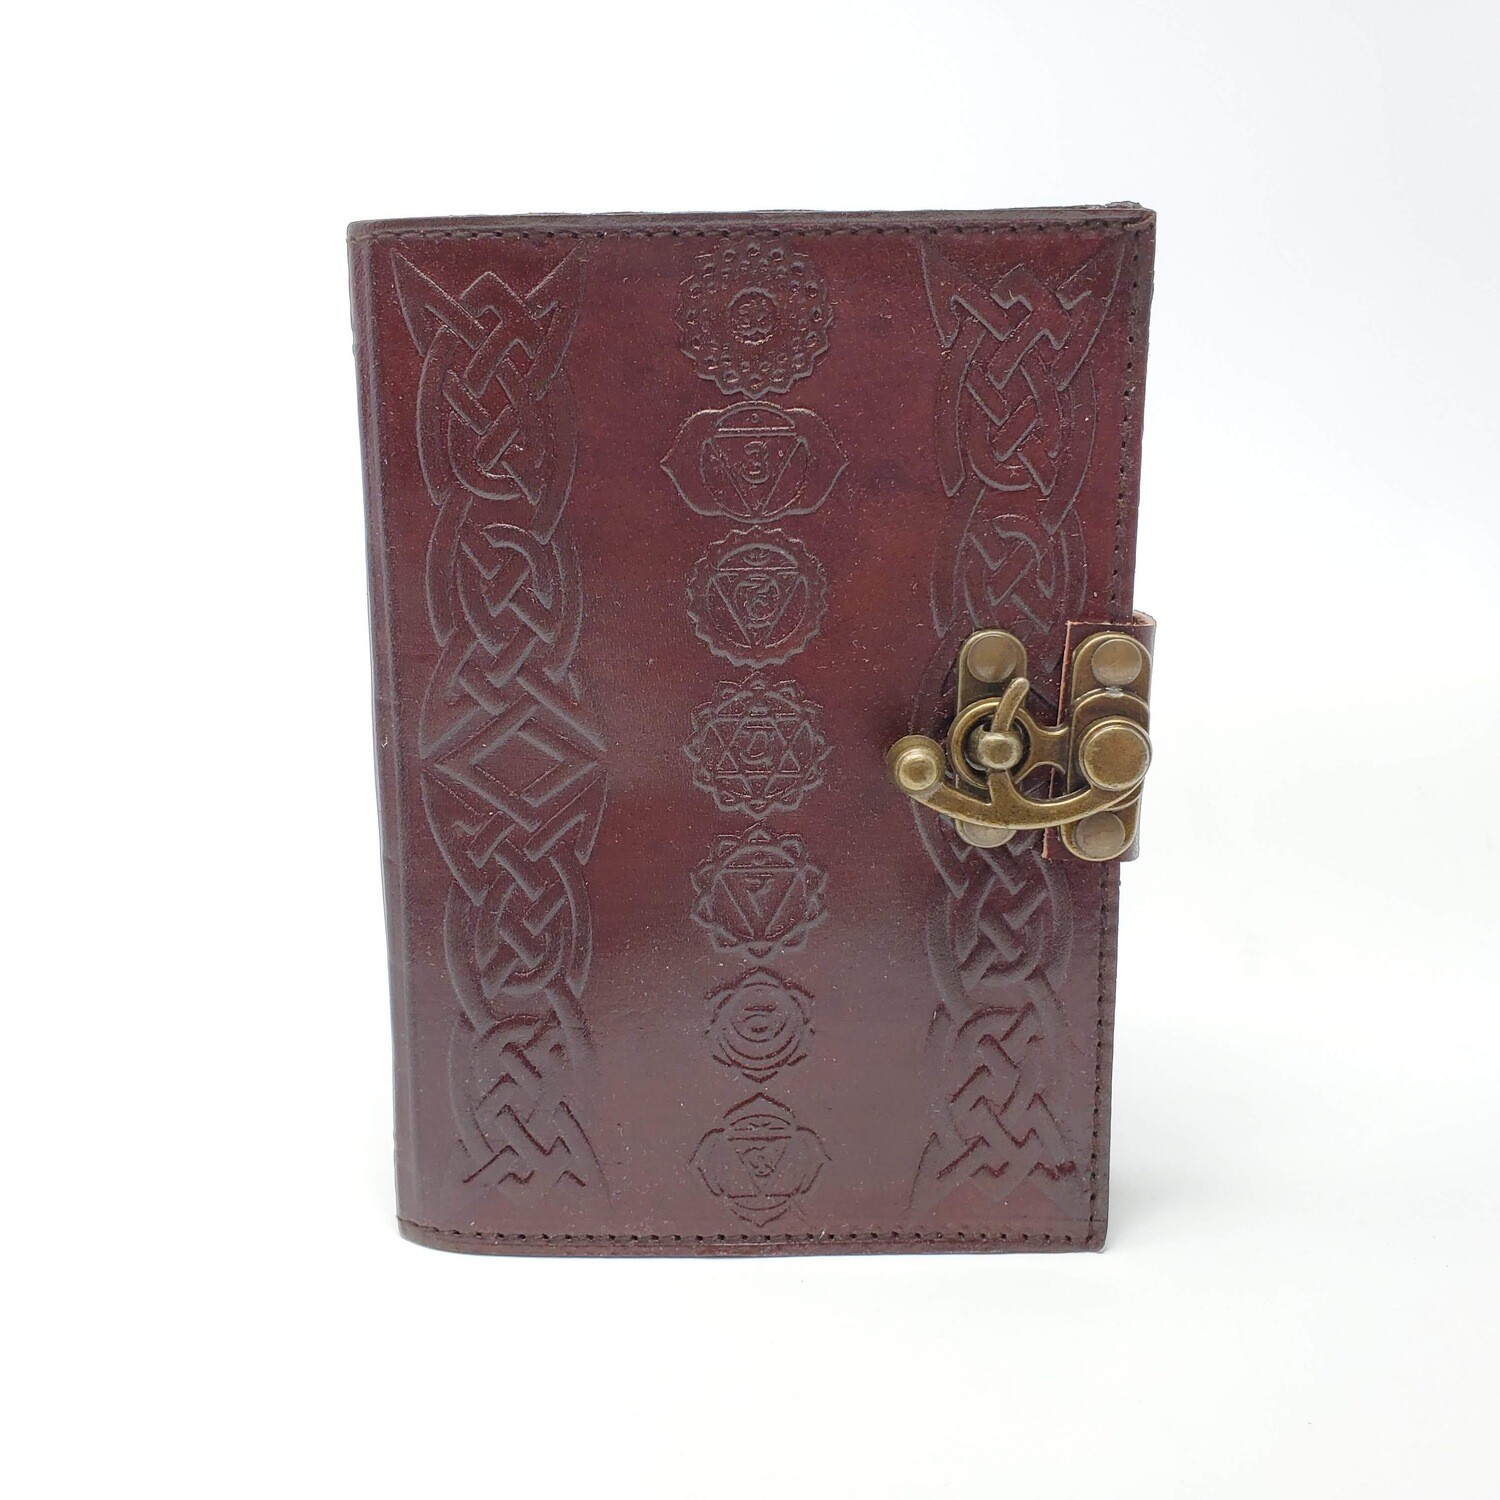 CHAKRA SYMBOLS LEATHER JOURNAL